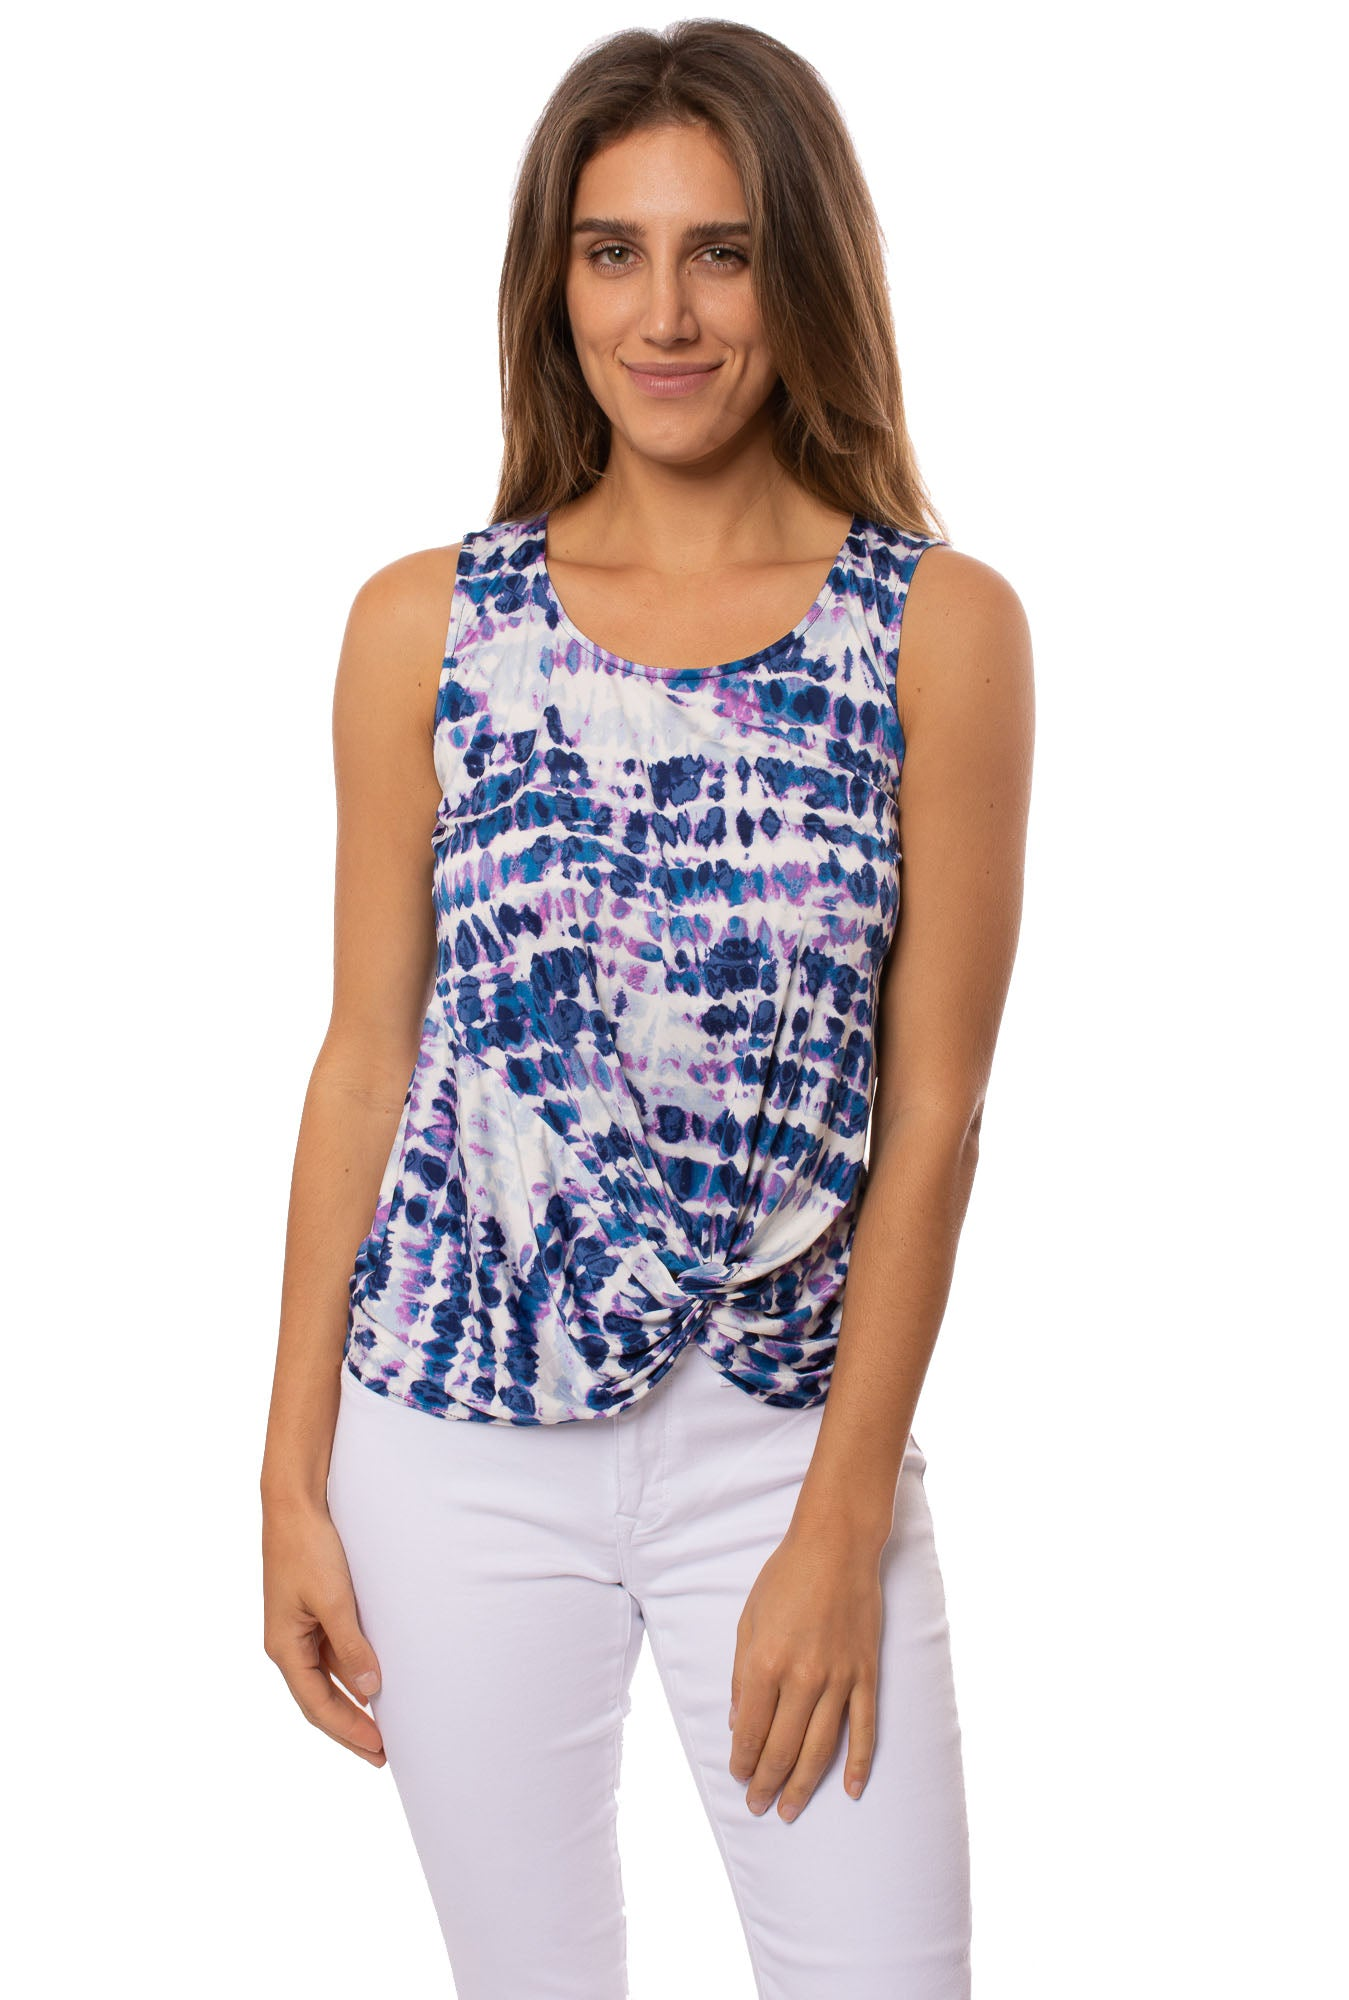 Hippie Guilt - Patricia Tie-Dye Top (HT3010, Blue/Purple/White Tie-Dye)